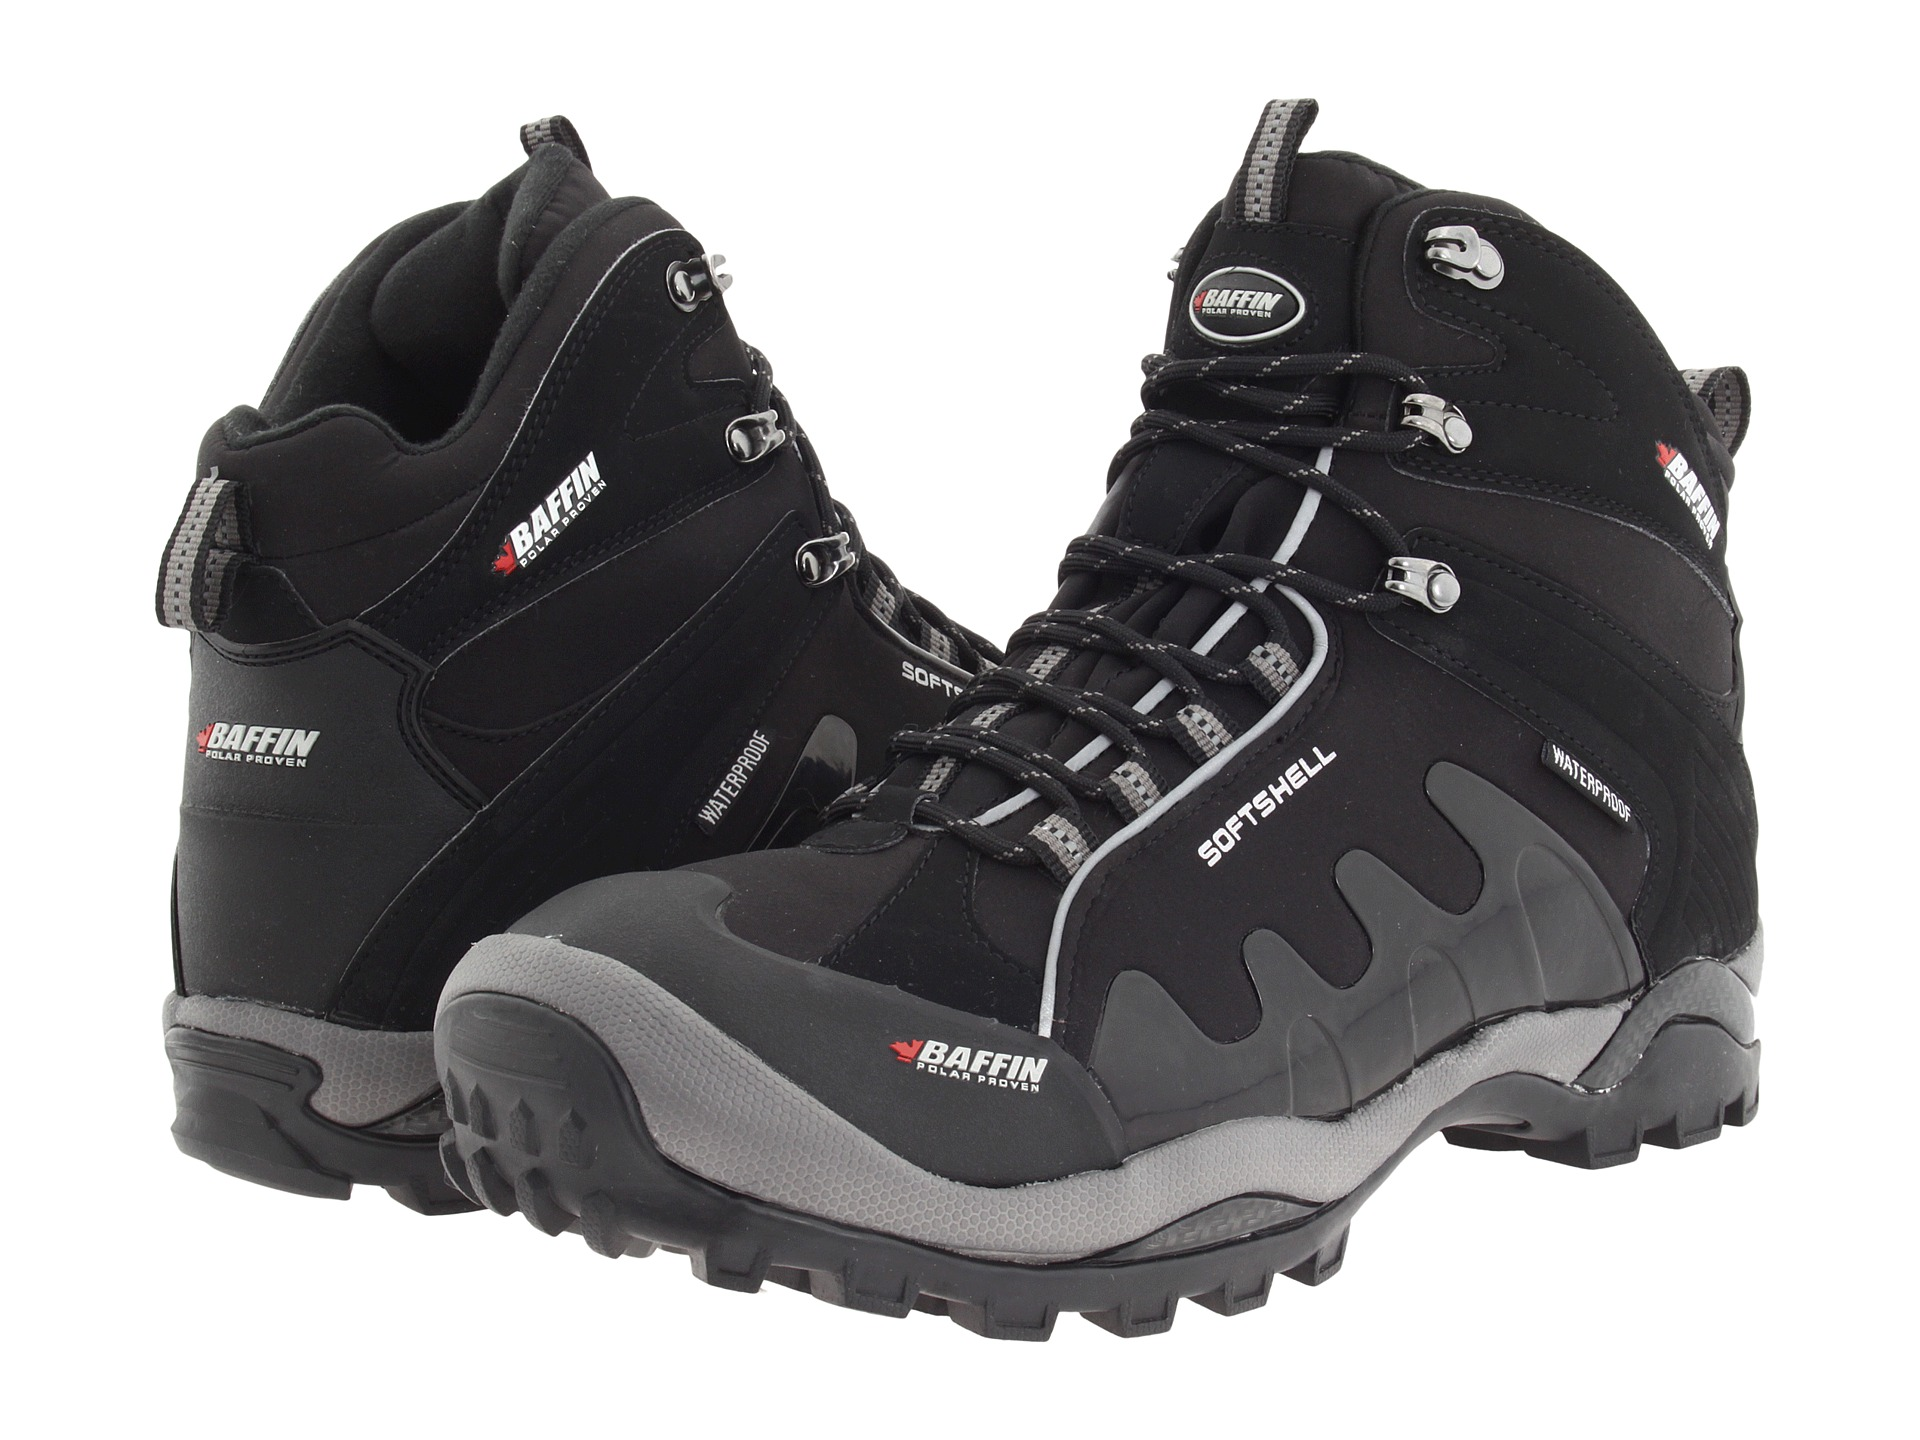 Boots, Snow Boots, Black, Men | Shipped Free at Zappos